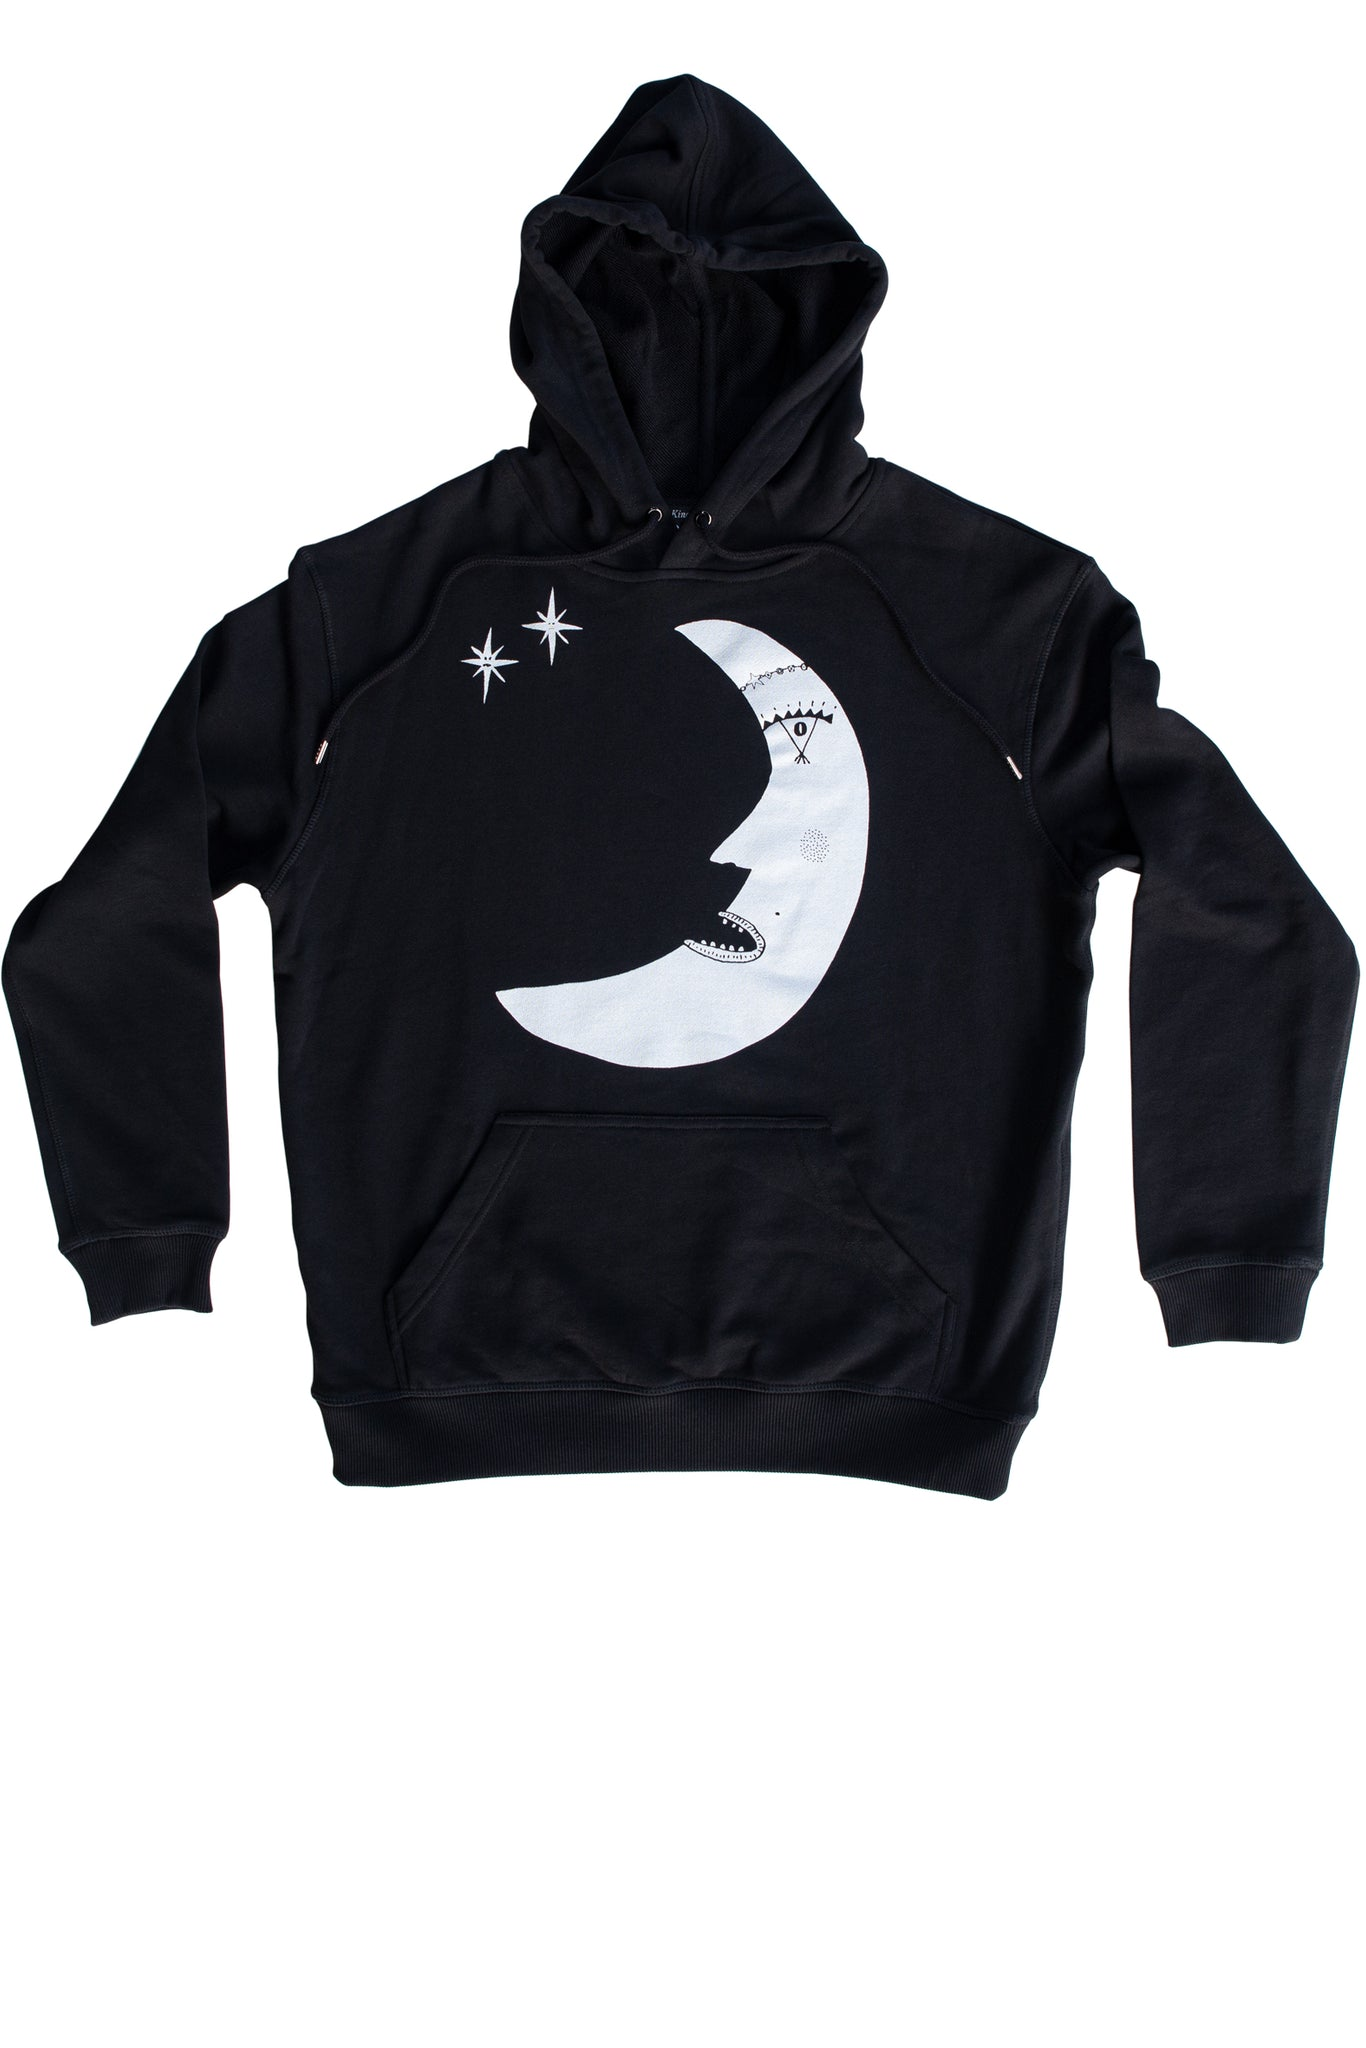 Les Moon, Poet (Prolific) Women's Hoody